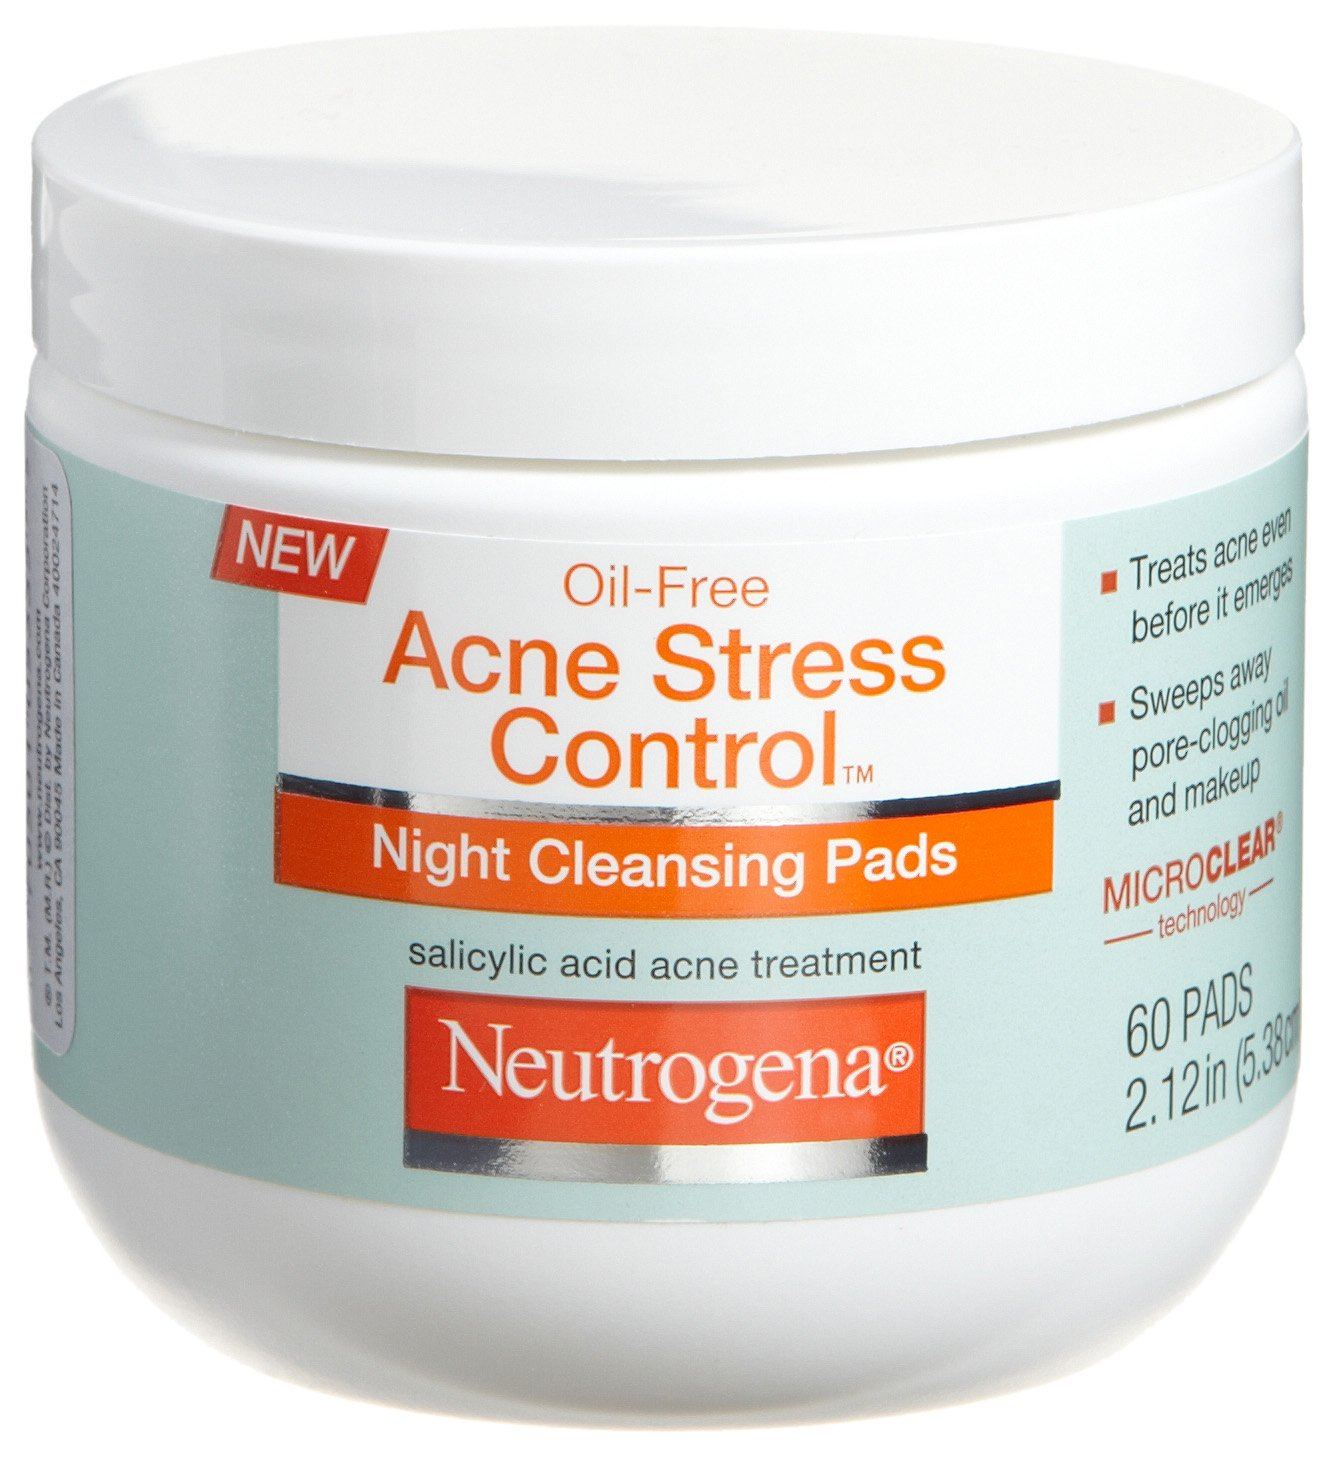 Neutrogena Acne Stress Control Night Cleansing Pads 60-Count (Pack of 3)